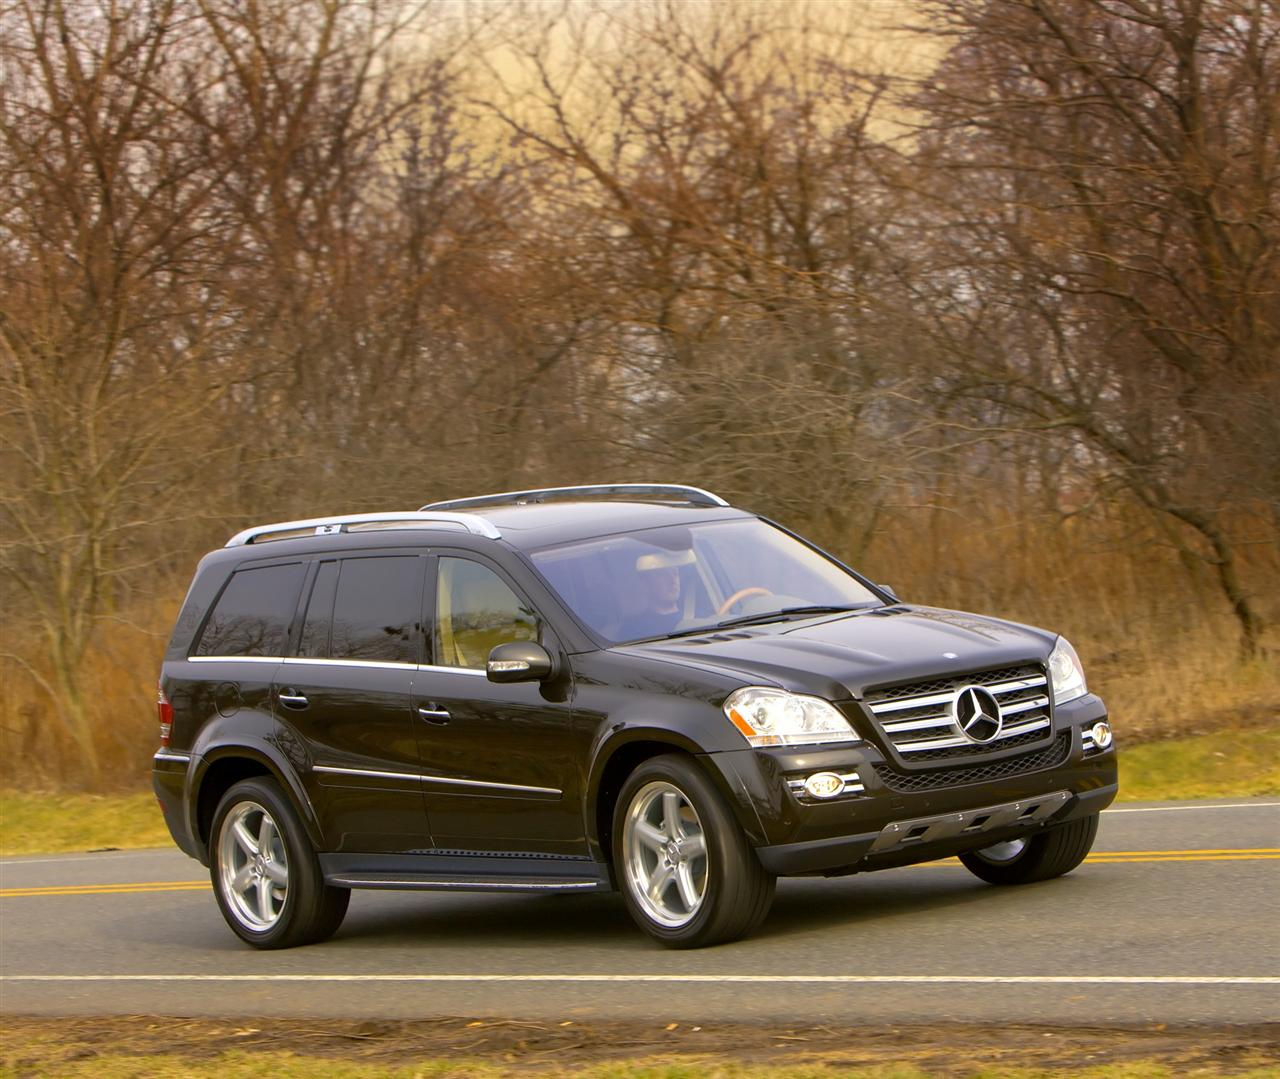 2008 mercedes benz gl class desktop wallpaper and high for 2008 mercedes benz gl550 specs